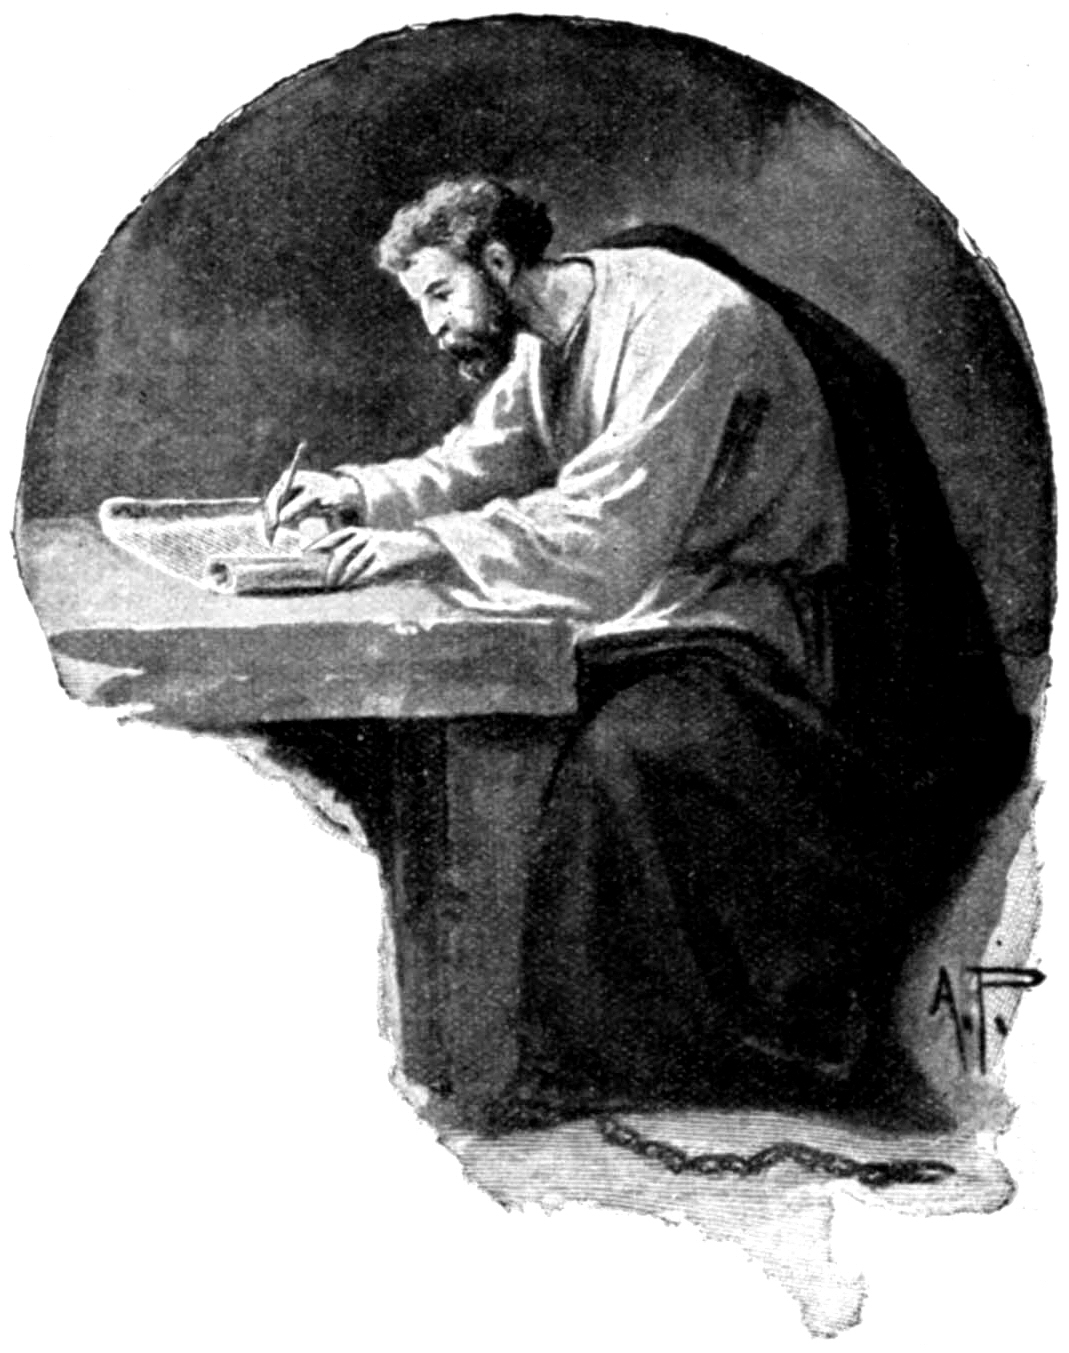 the life of apostle paul Preface a study of the person and life of apostle paul can be a most rewarding and humbling experience as i prepared my notes for this study course, i could not help but be in awe.